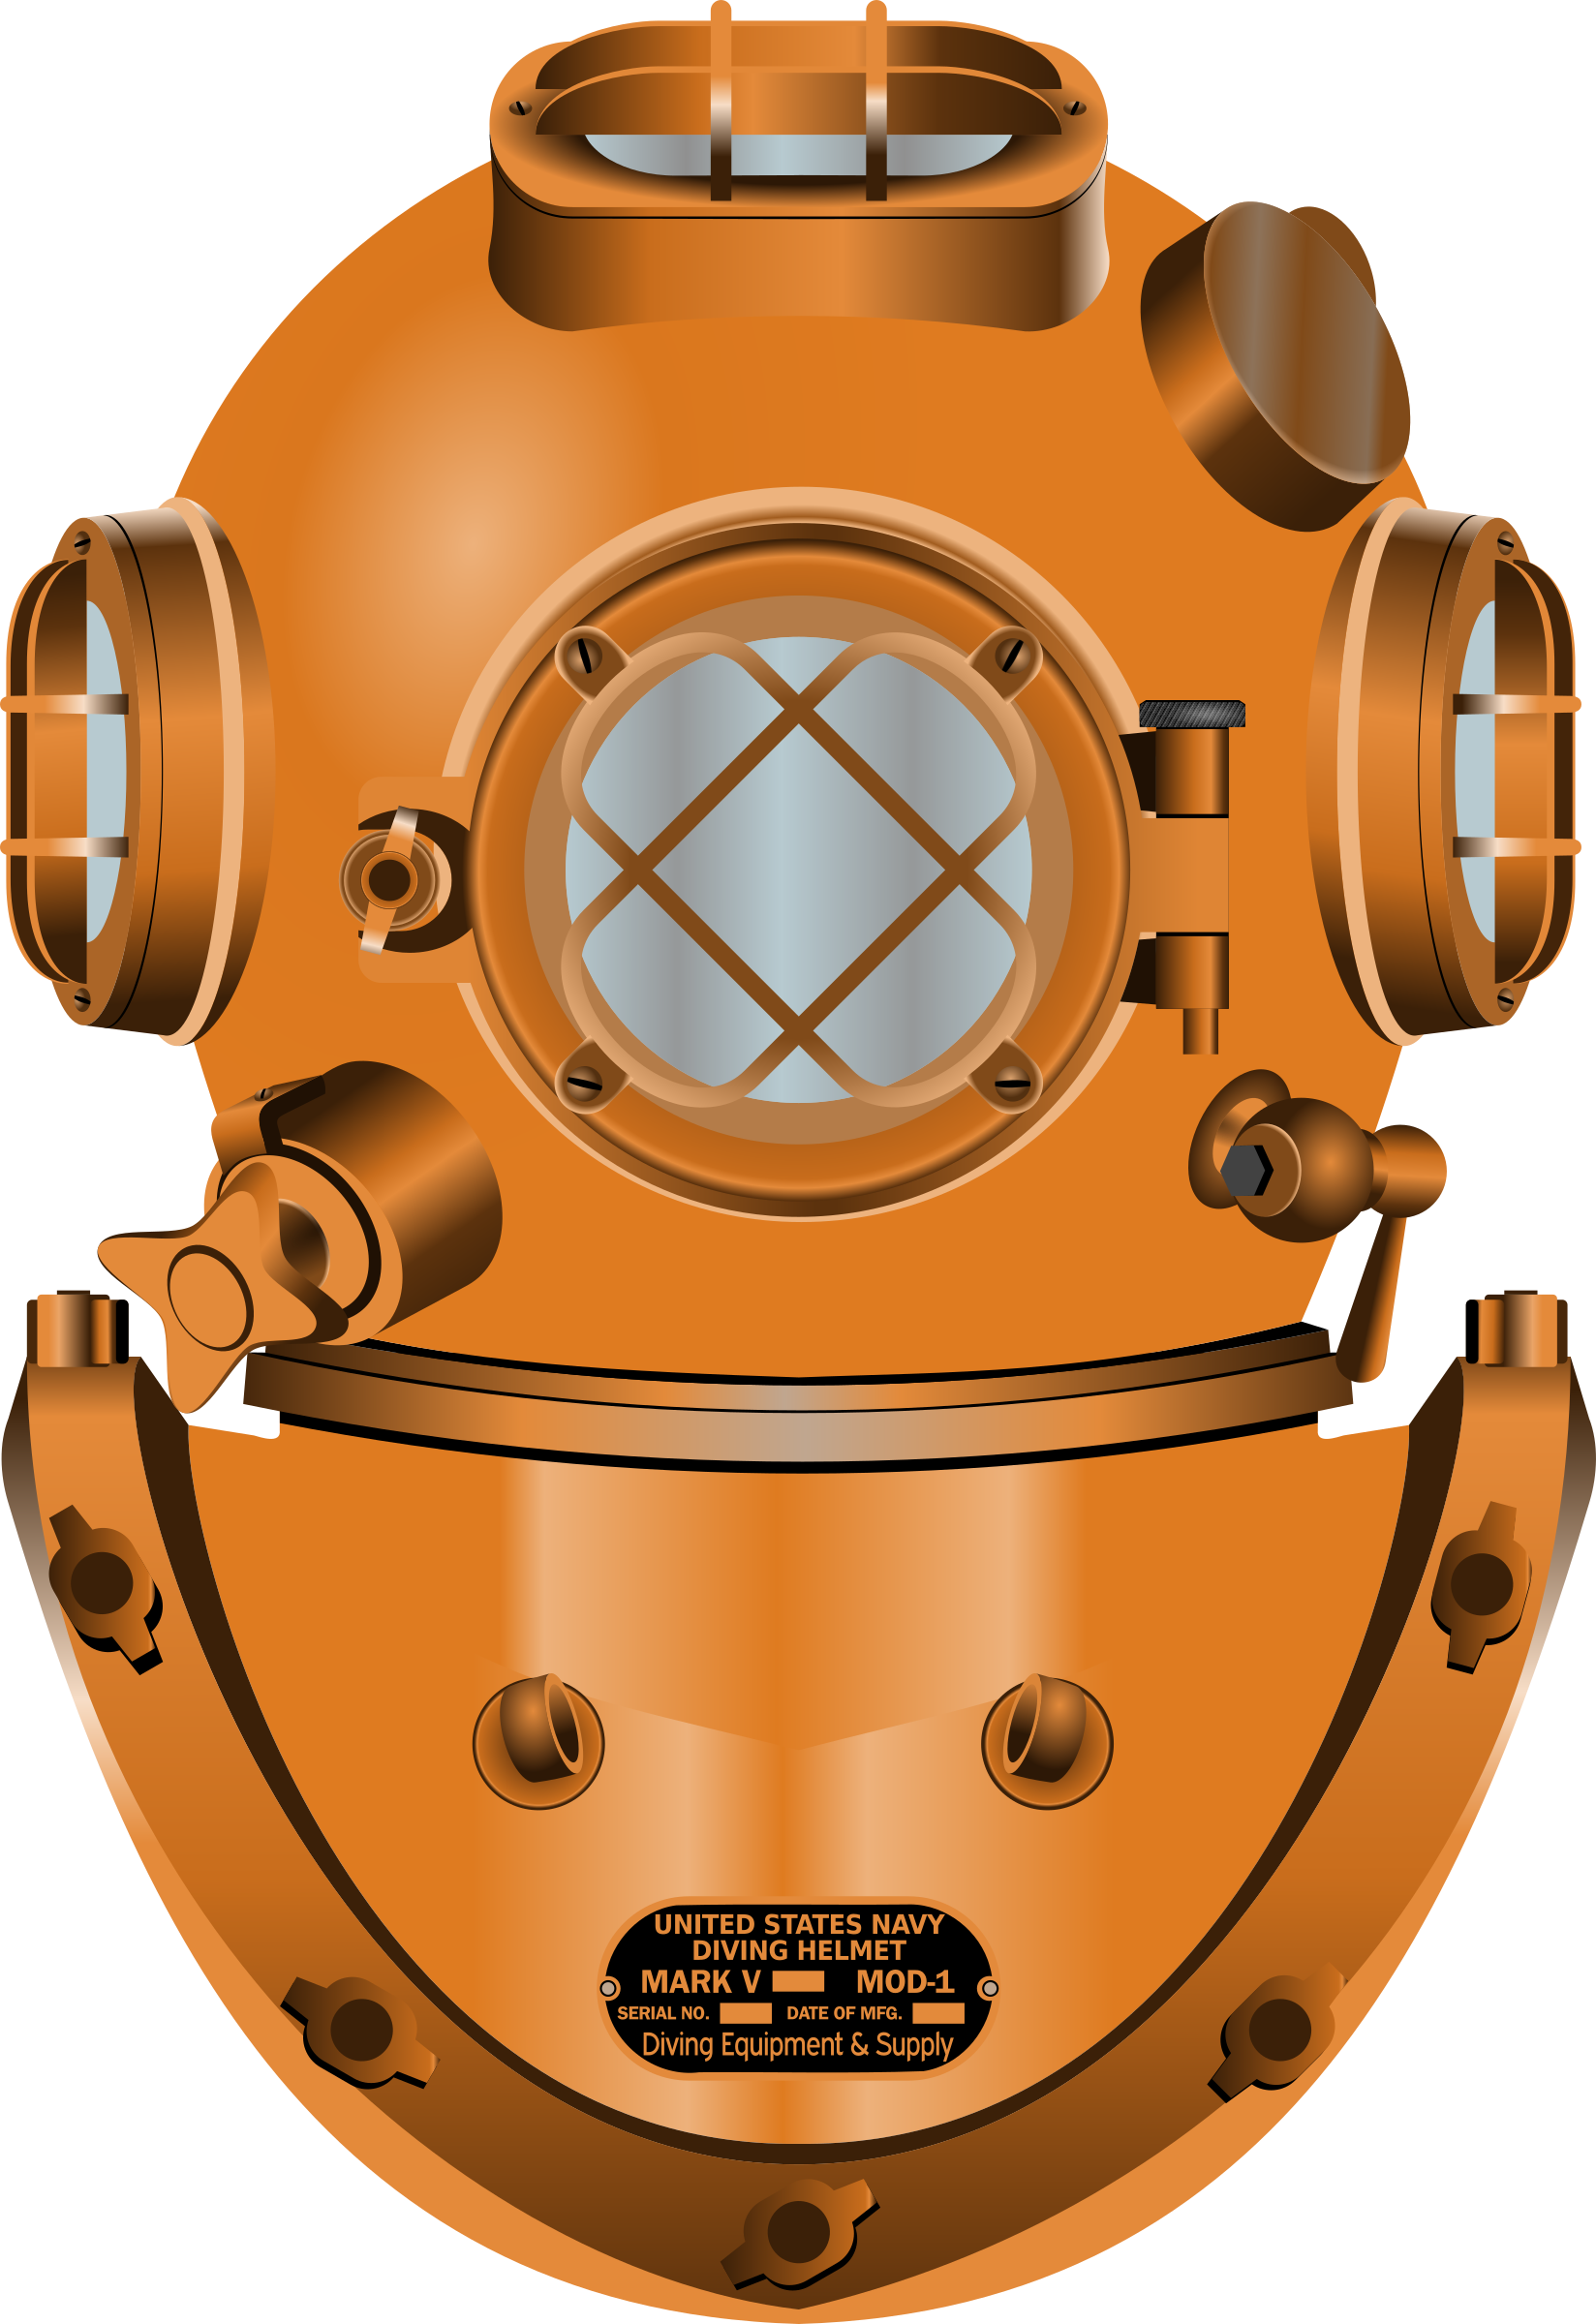 Diving Helmet by conte magnus